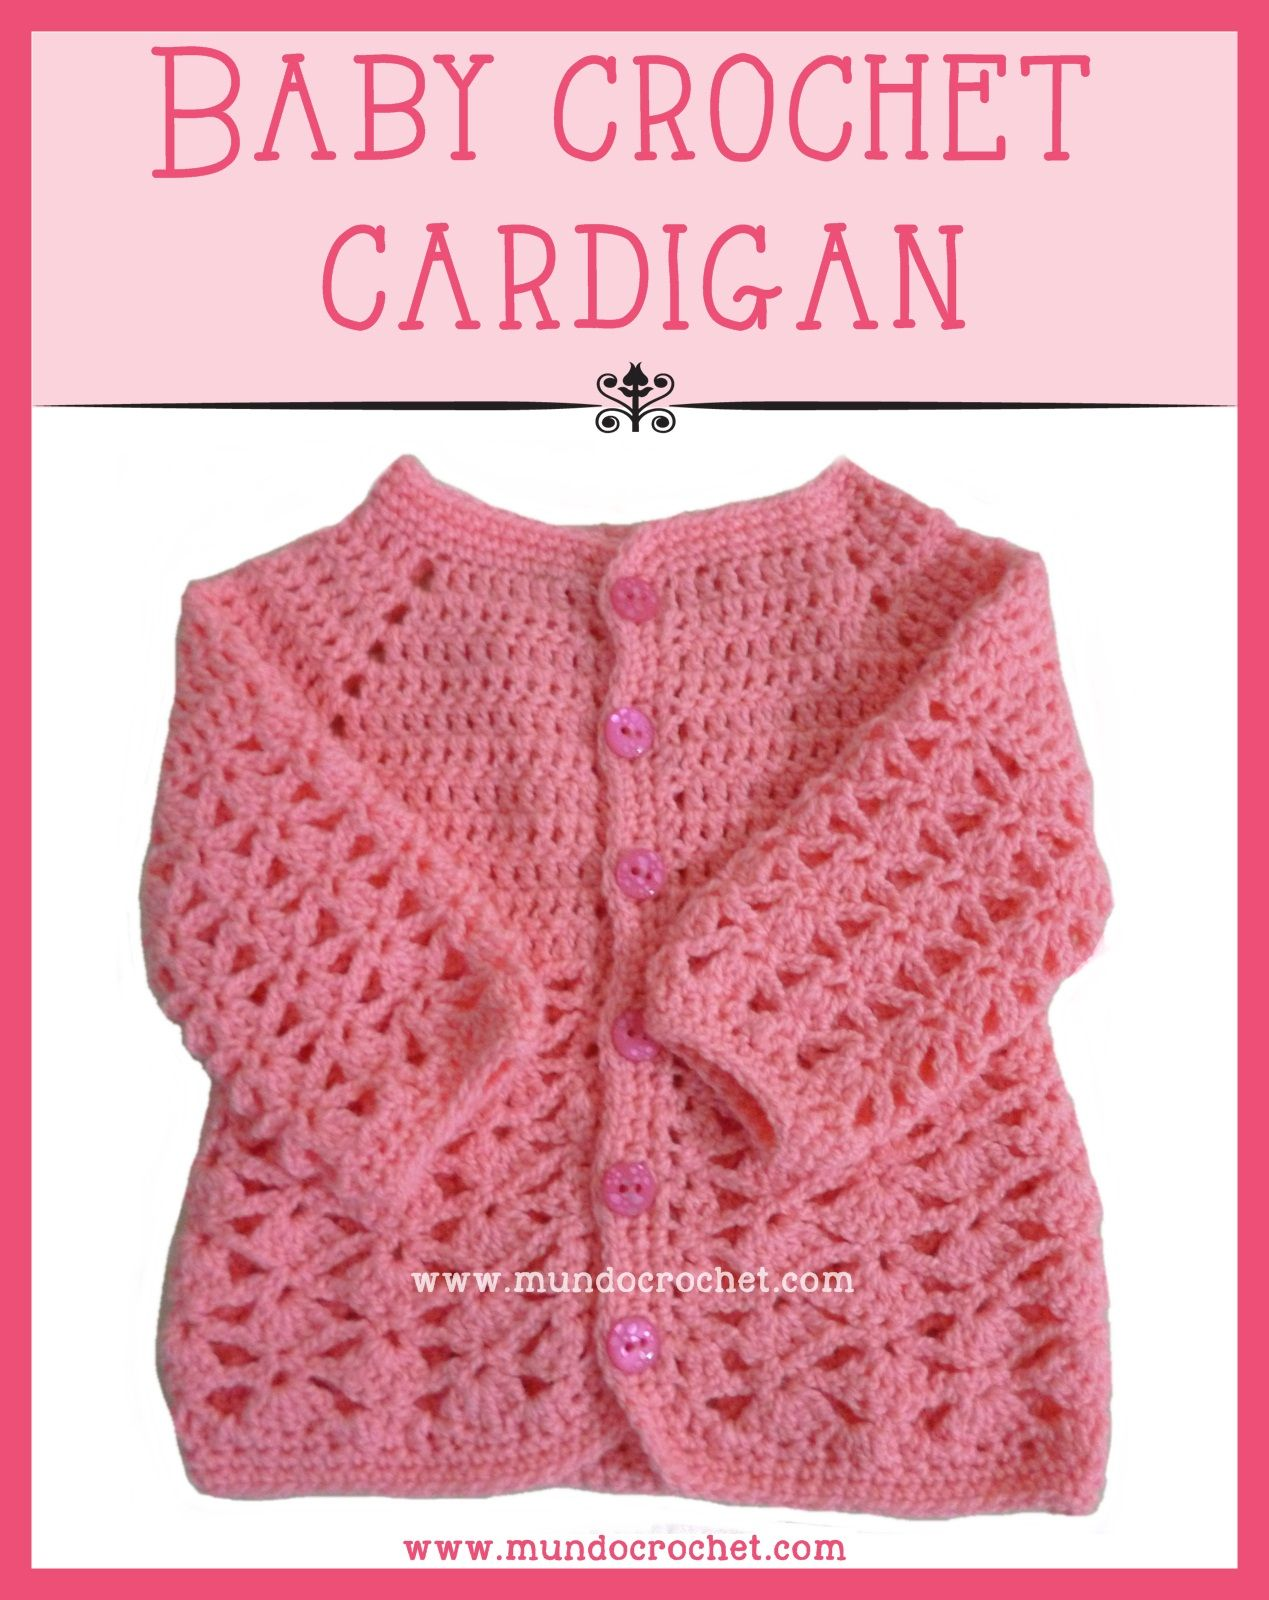 Baby crochet cardigan or sweater. Free pattern from Mundocrochet.com ...